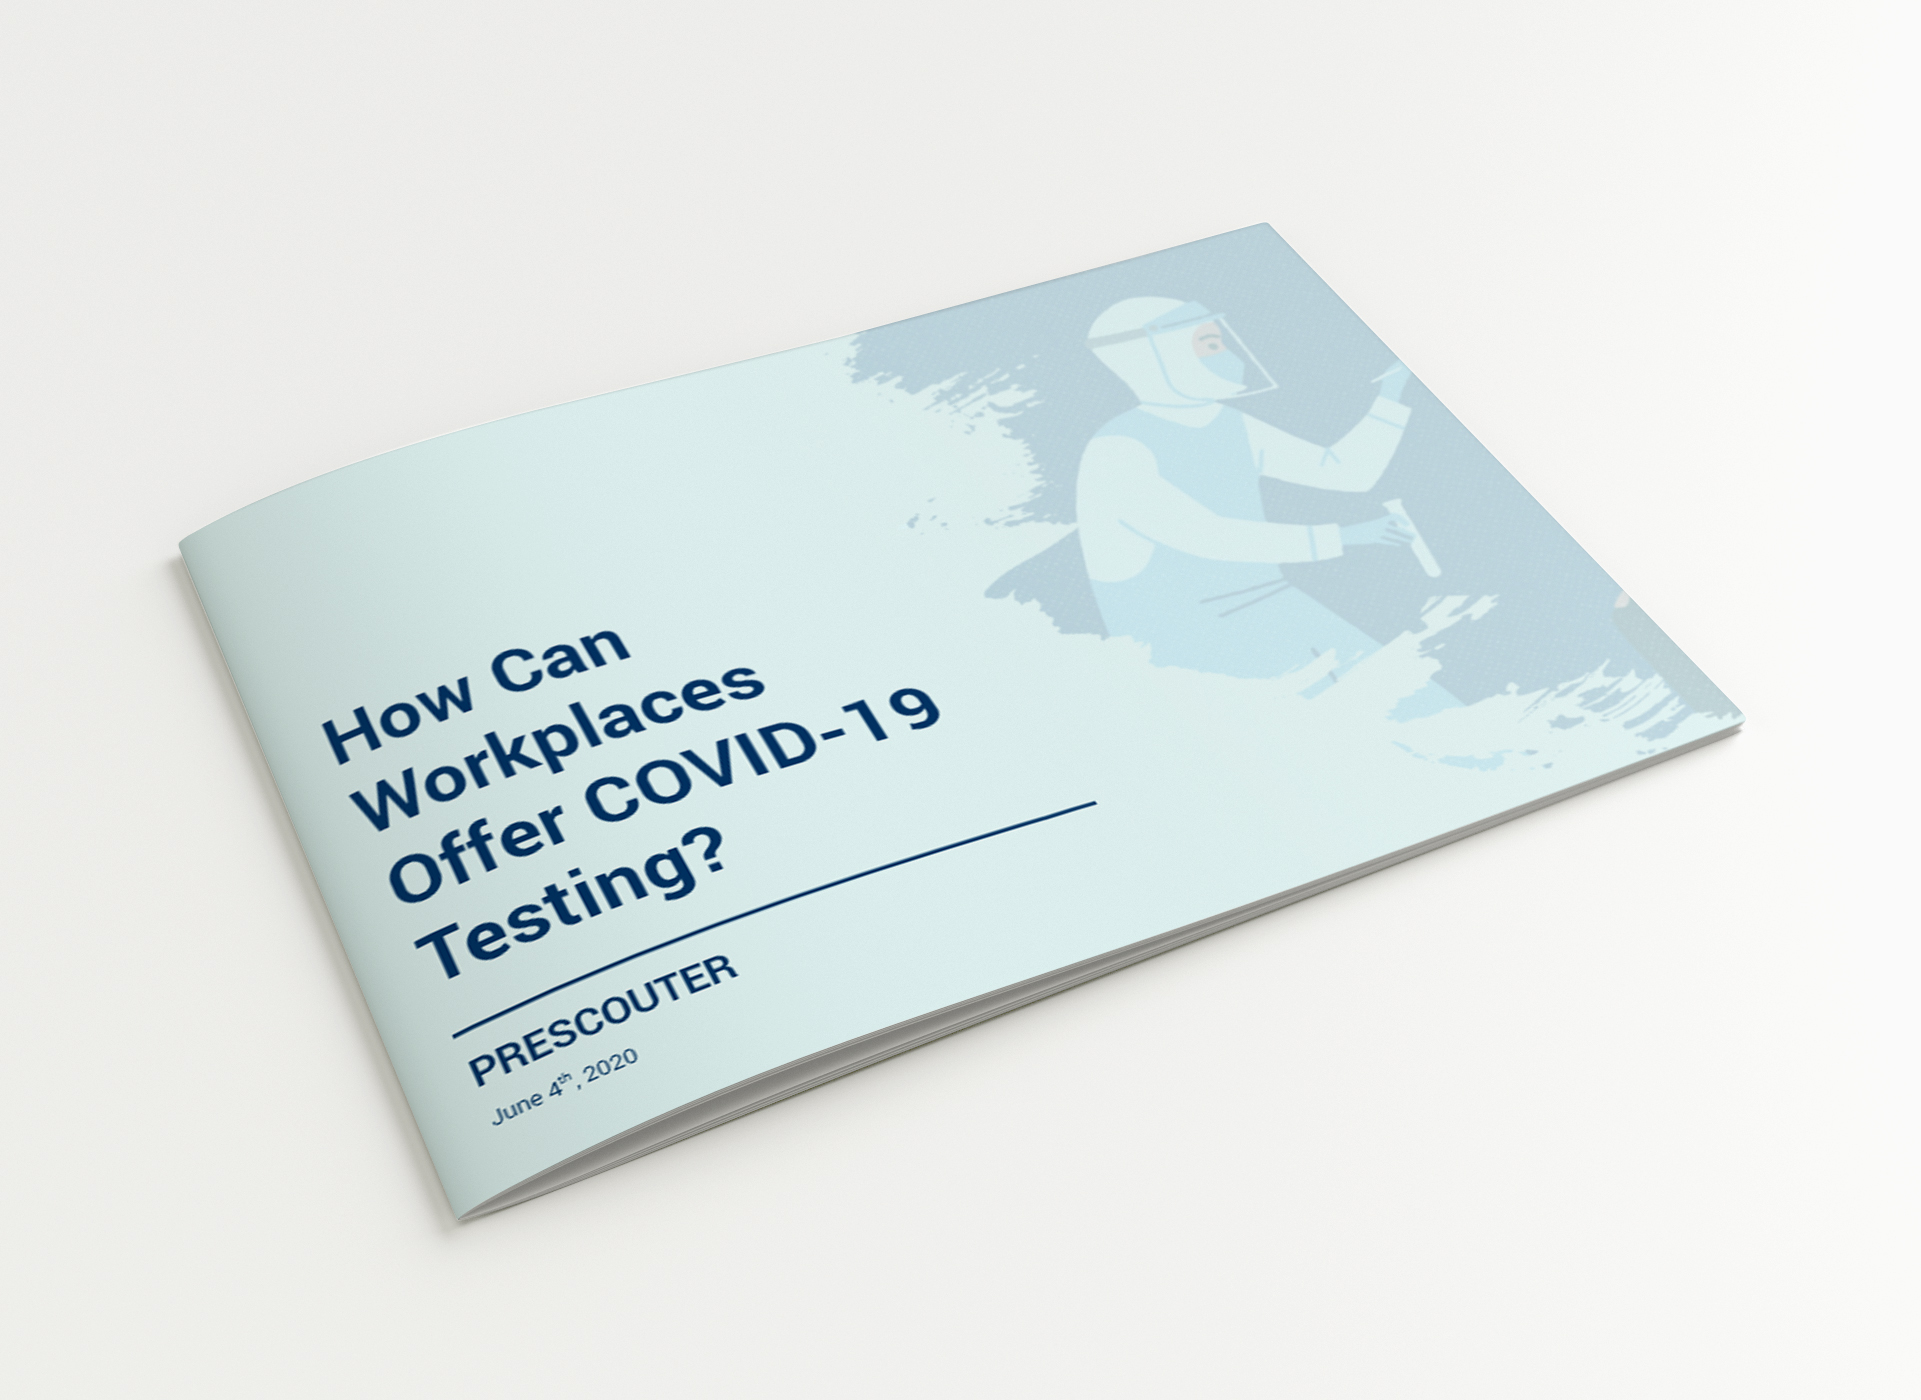 COVID-19 Testing in the Workplace